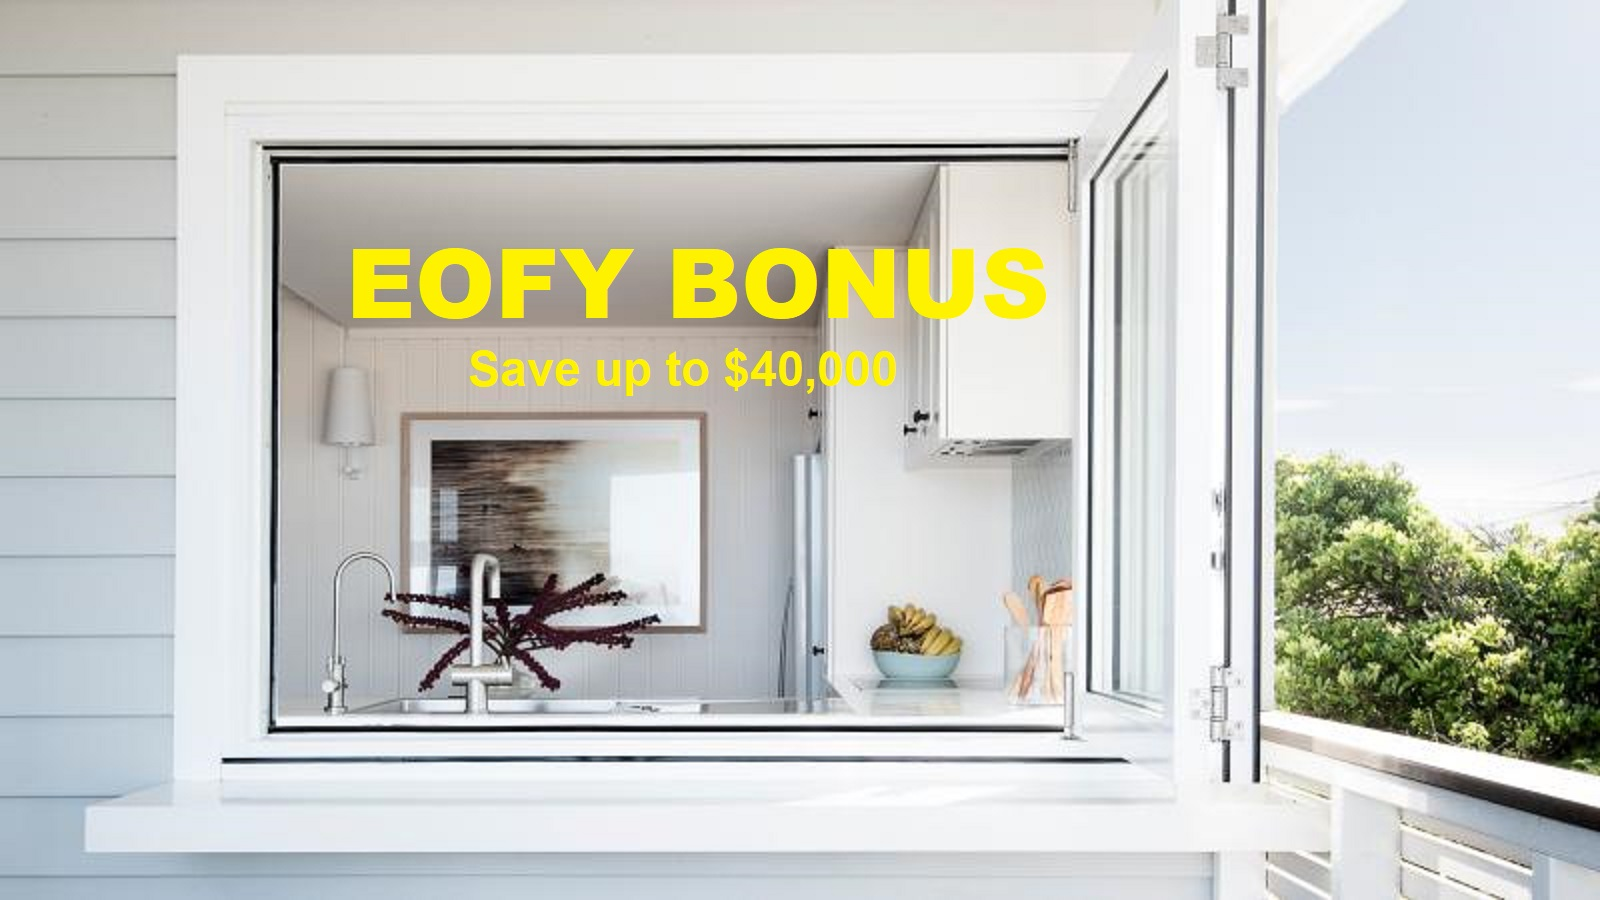 3 reasons to sell before the EOFY